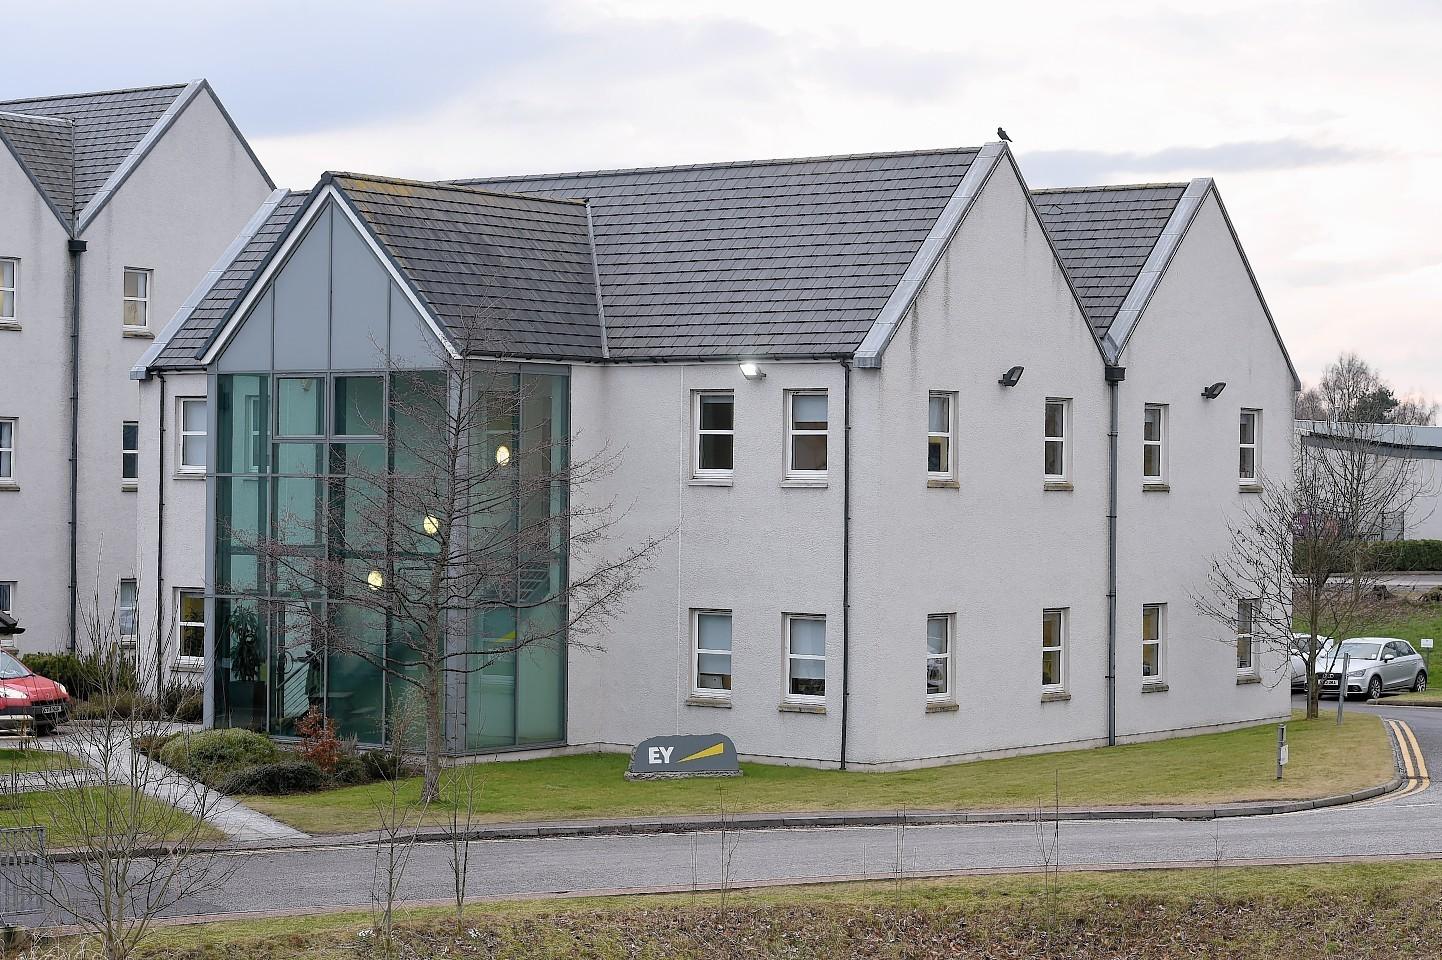 EY's offices at Stoneyfield Business Park, in Inverness